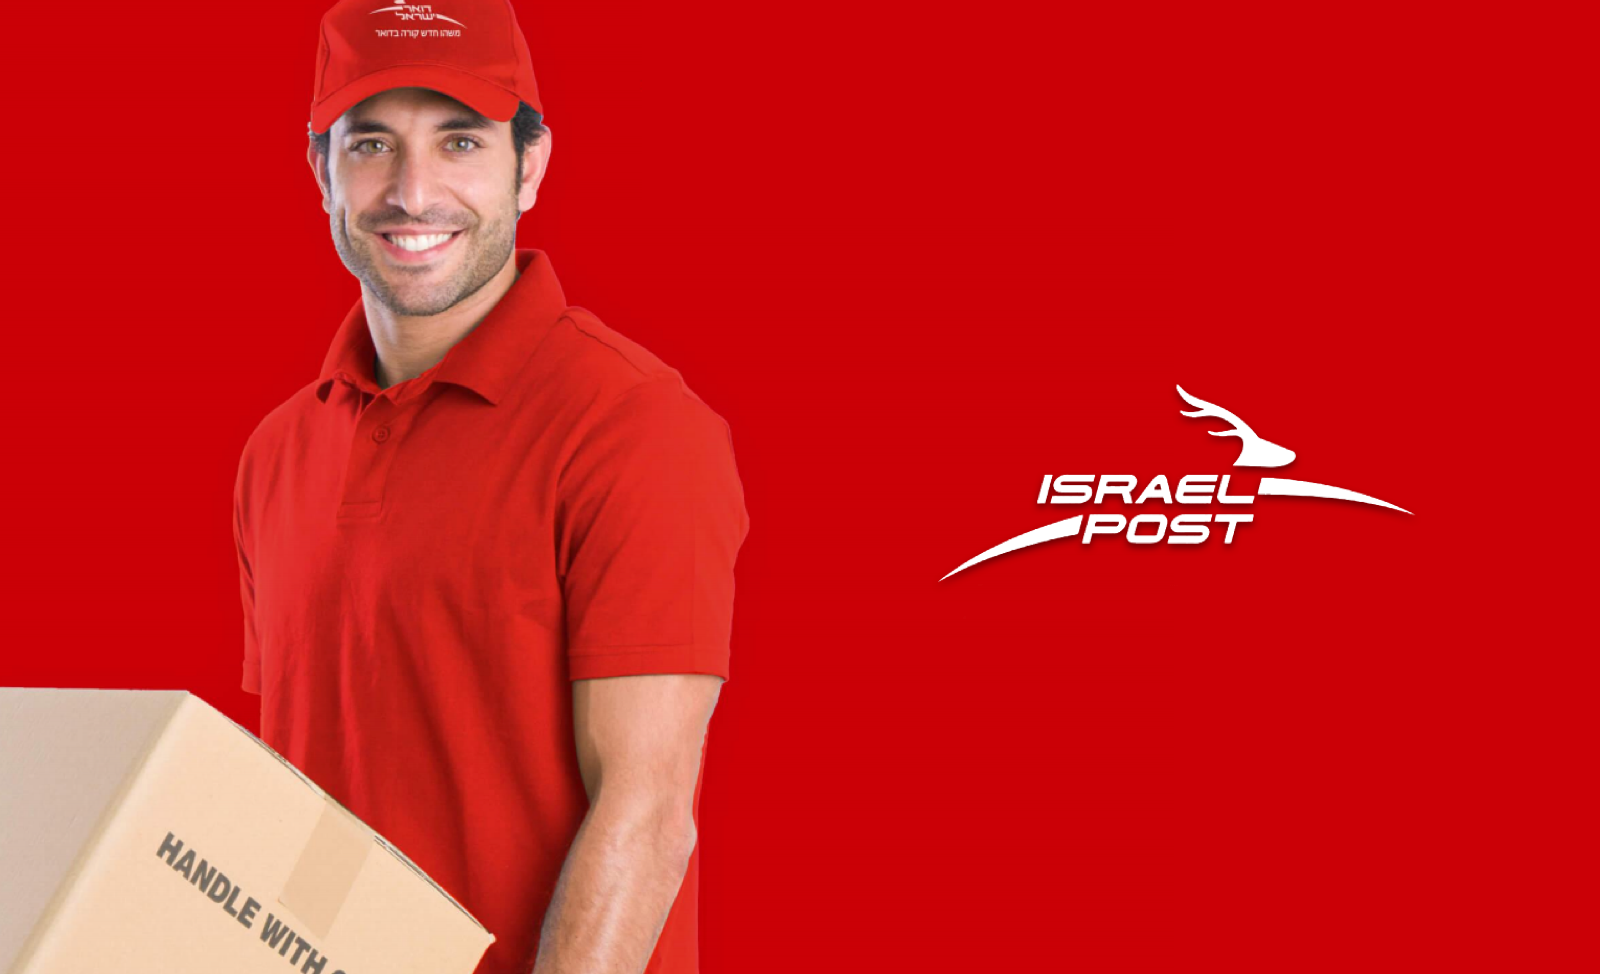 Track israel post parcels and delivery